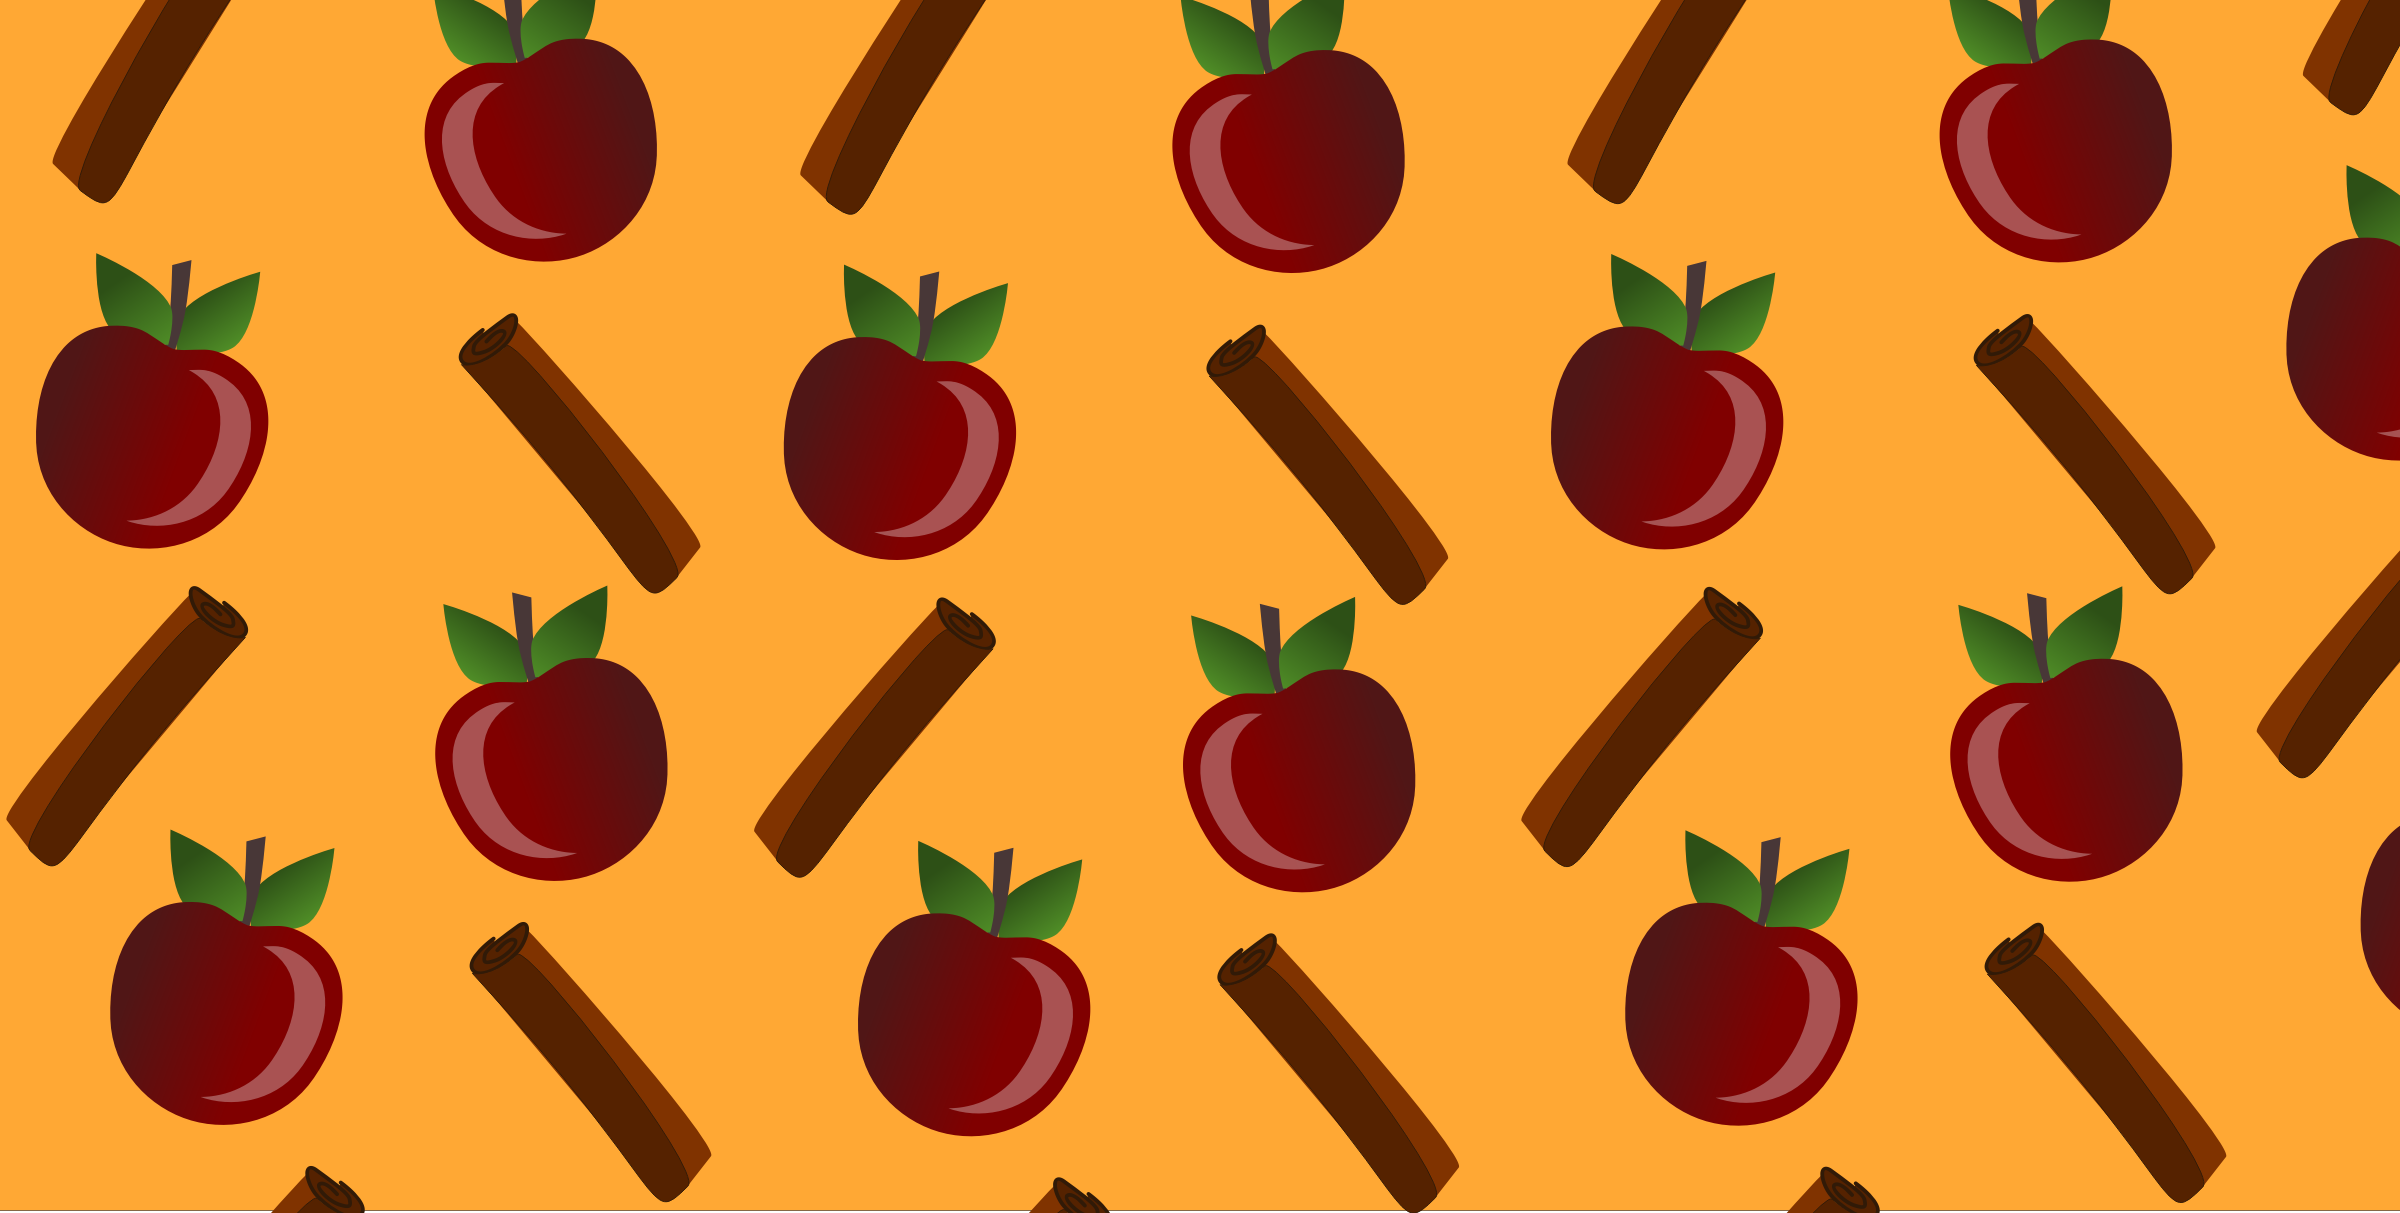 Apple cinnamon clipart clipart freeuse stock Clipart - Apple Cinnamon clipart freeuse stock